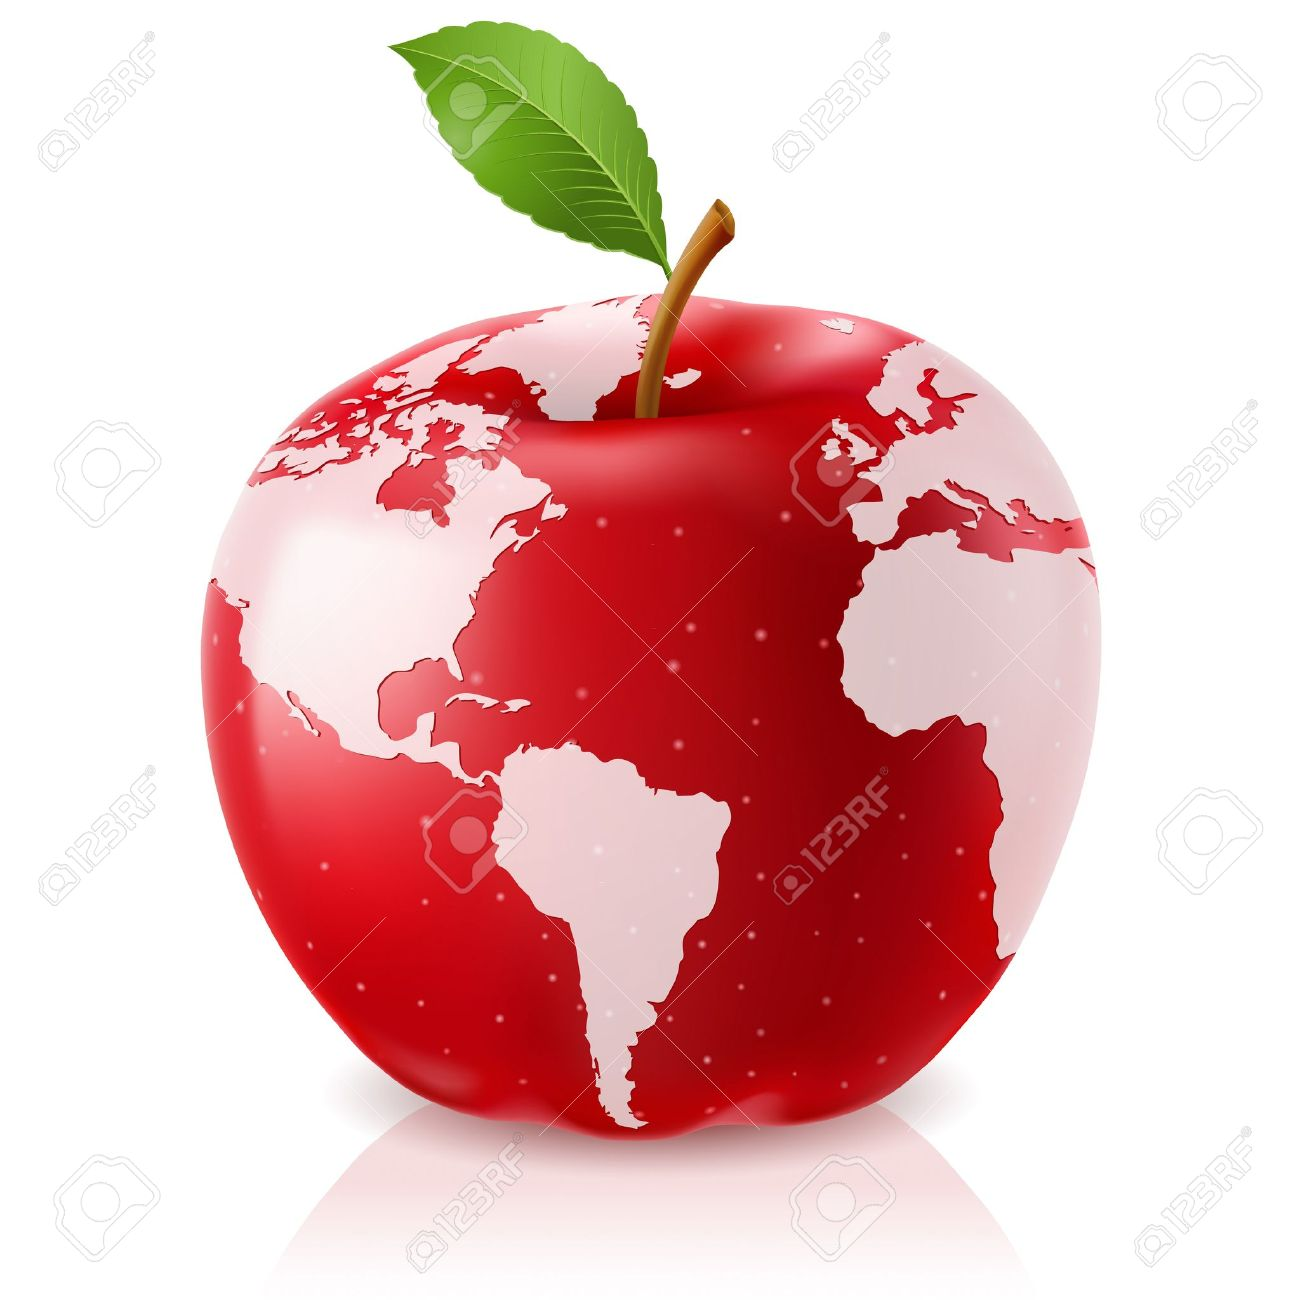 Vector red apple world map on white background royalty free cliparts vector vector red apple world map on white background gumiabroncs Gallery